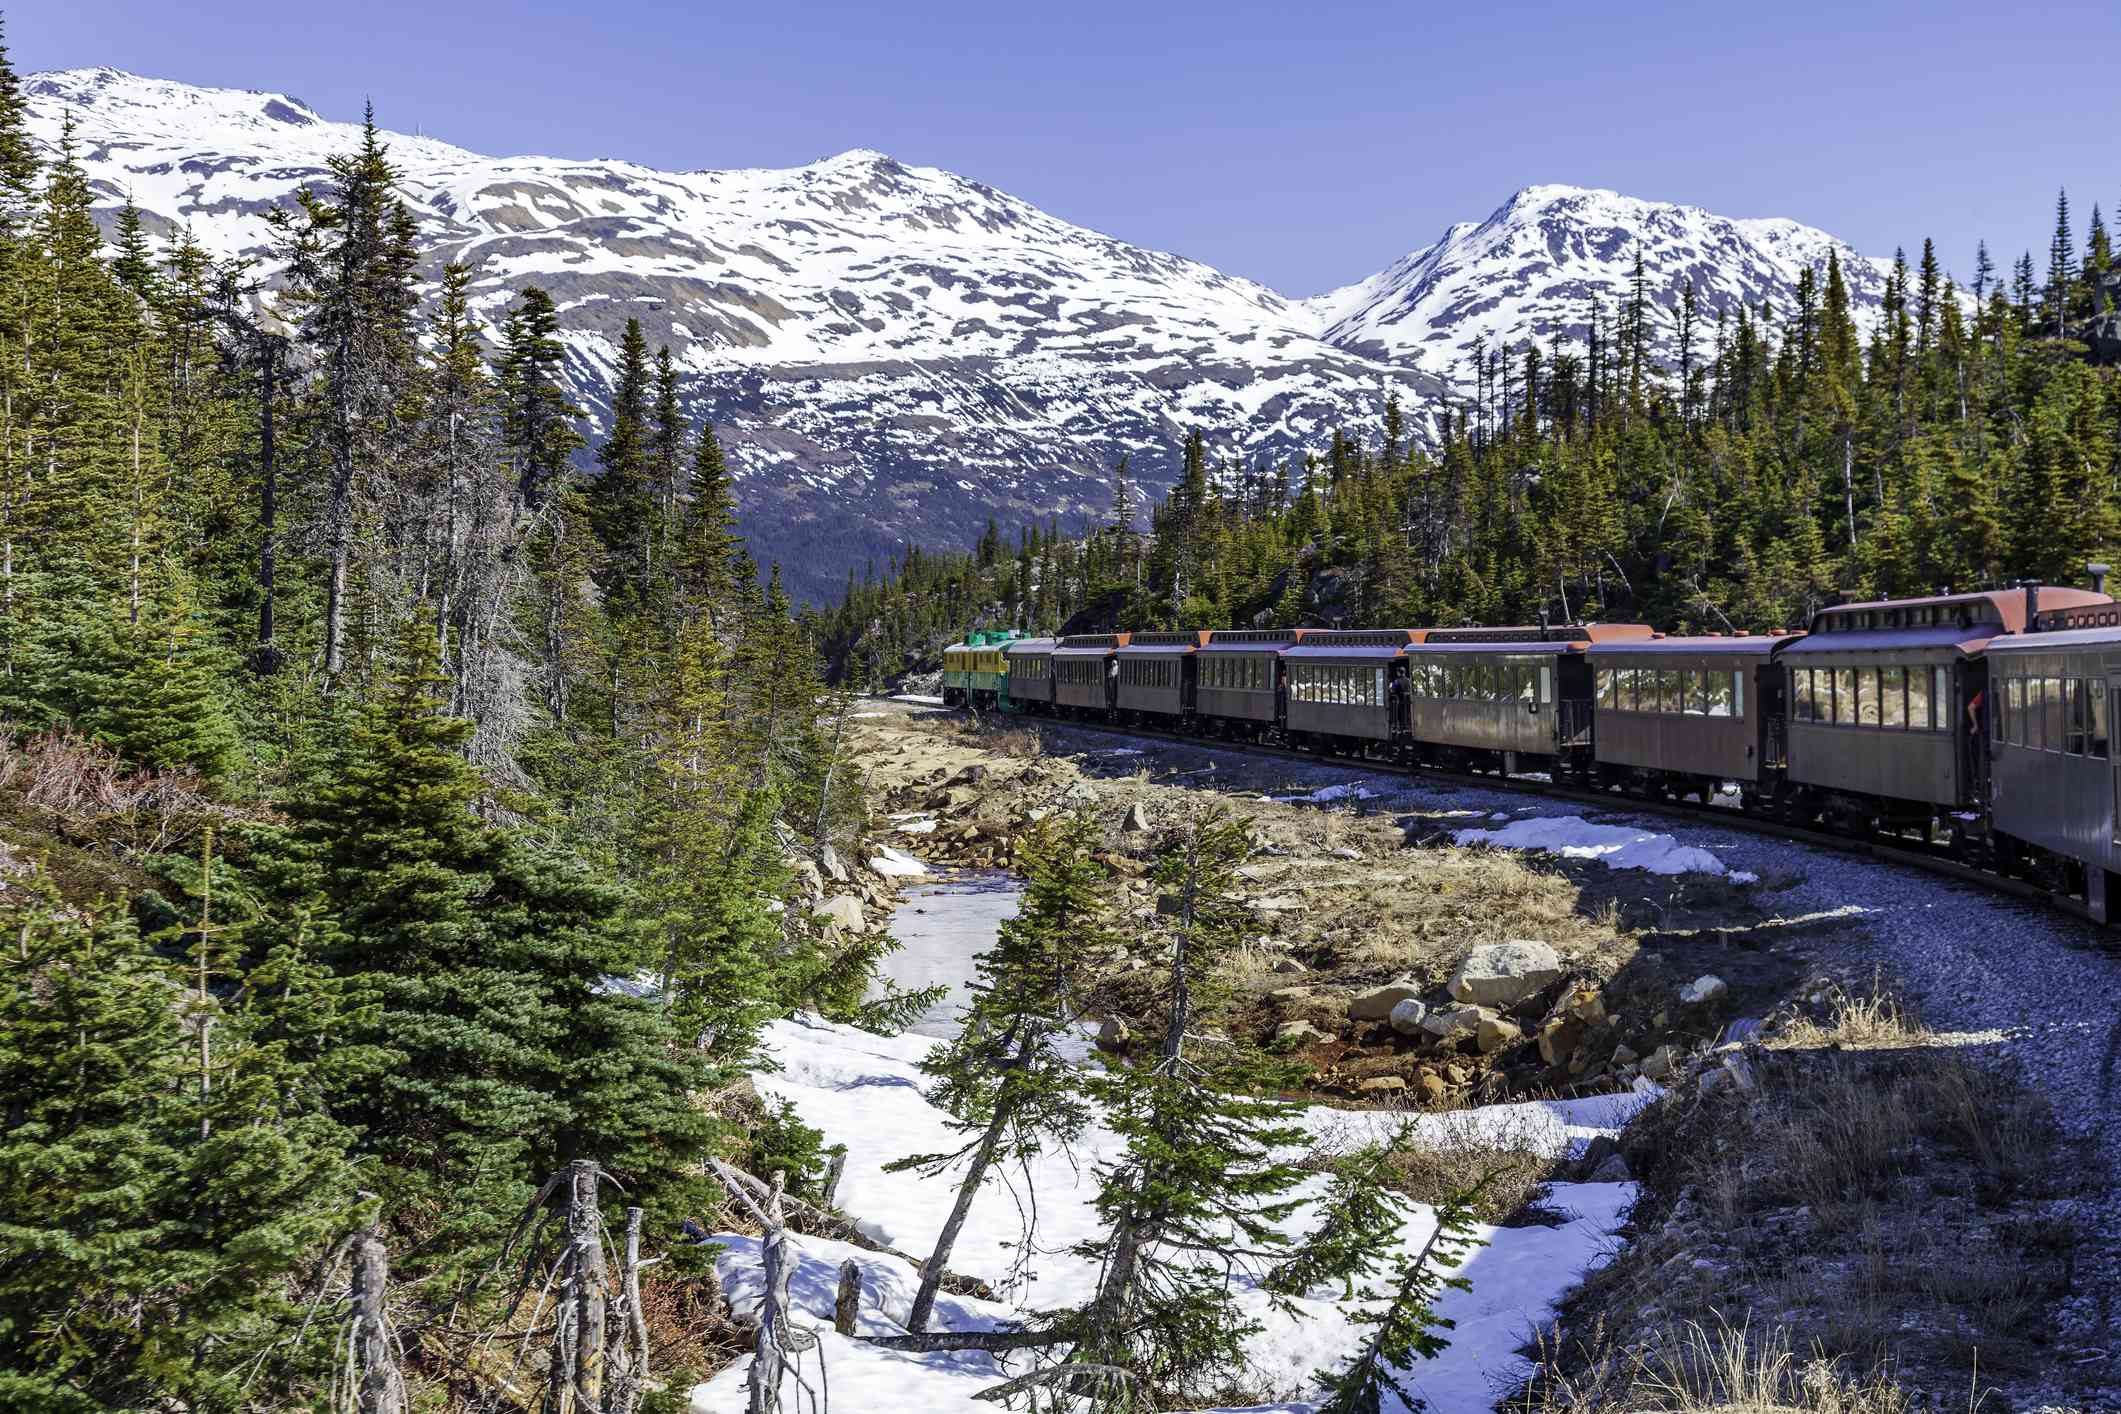 A passenger train travels through a landscape of pine trees and snow-capped mountains